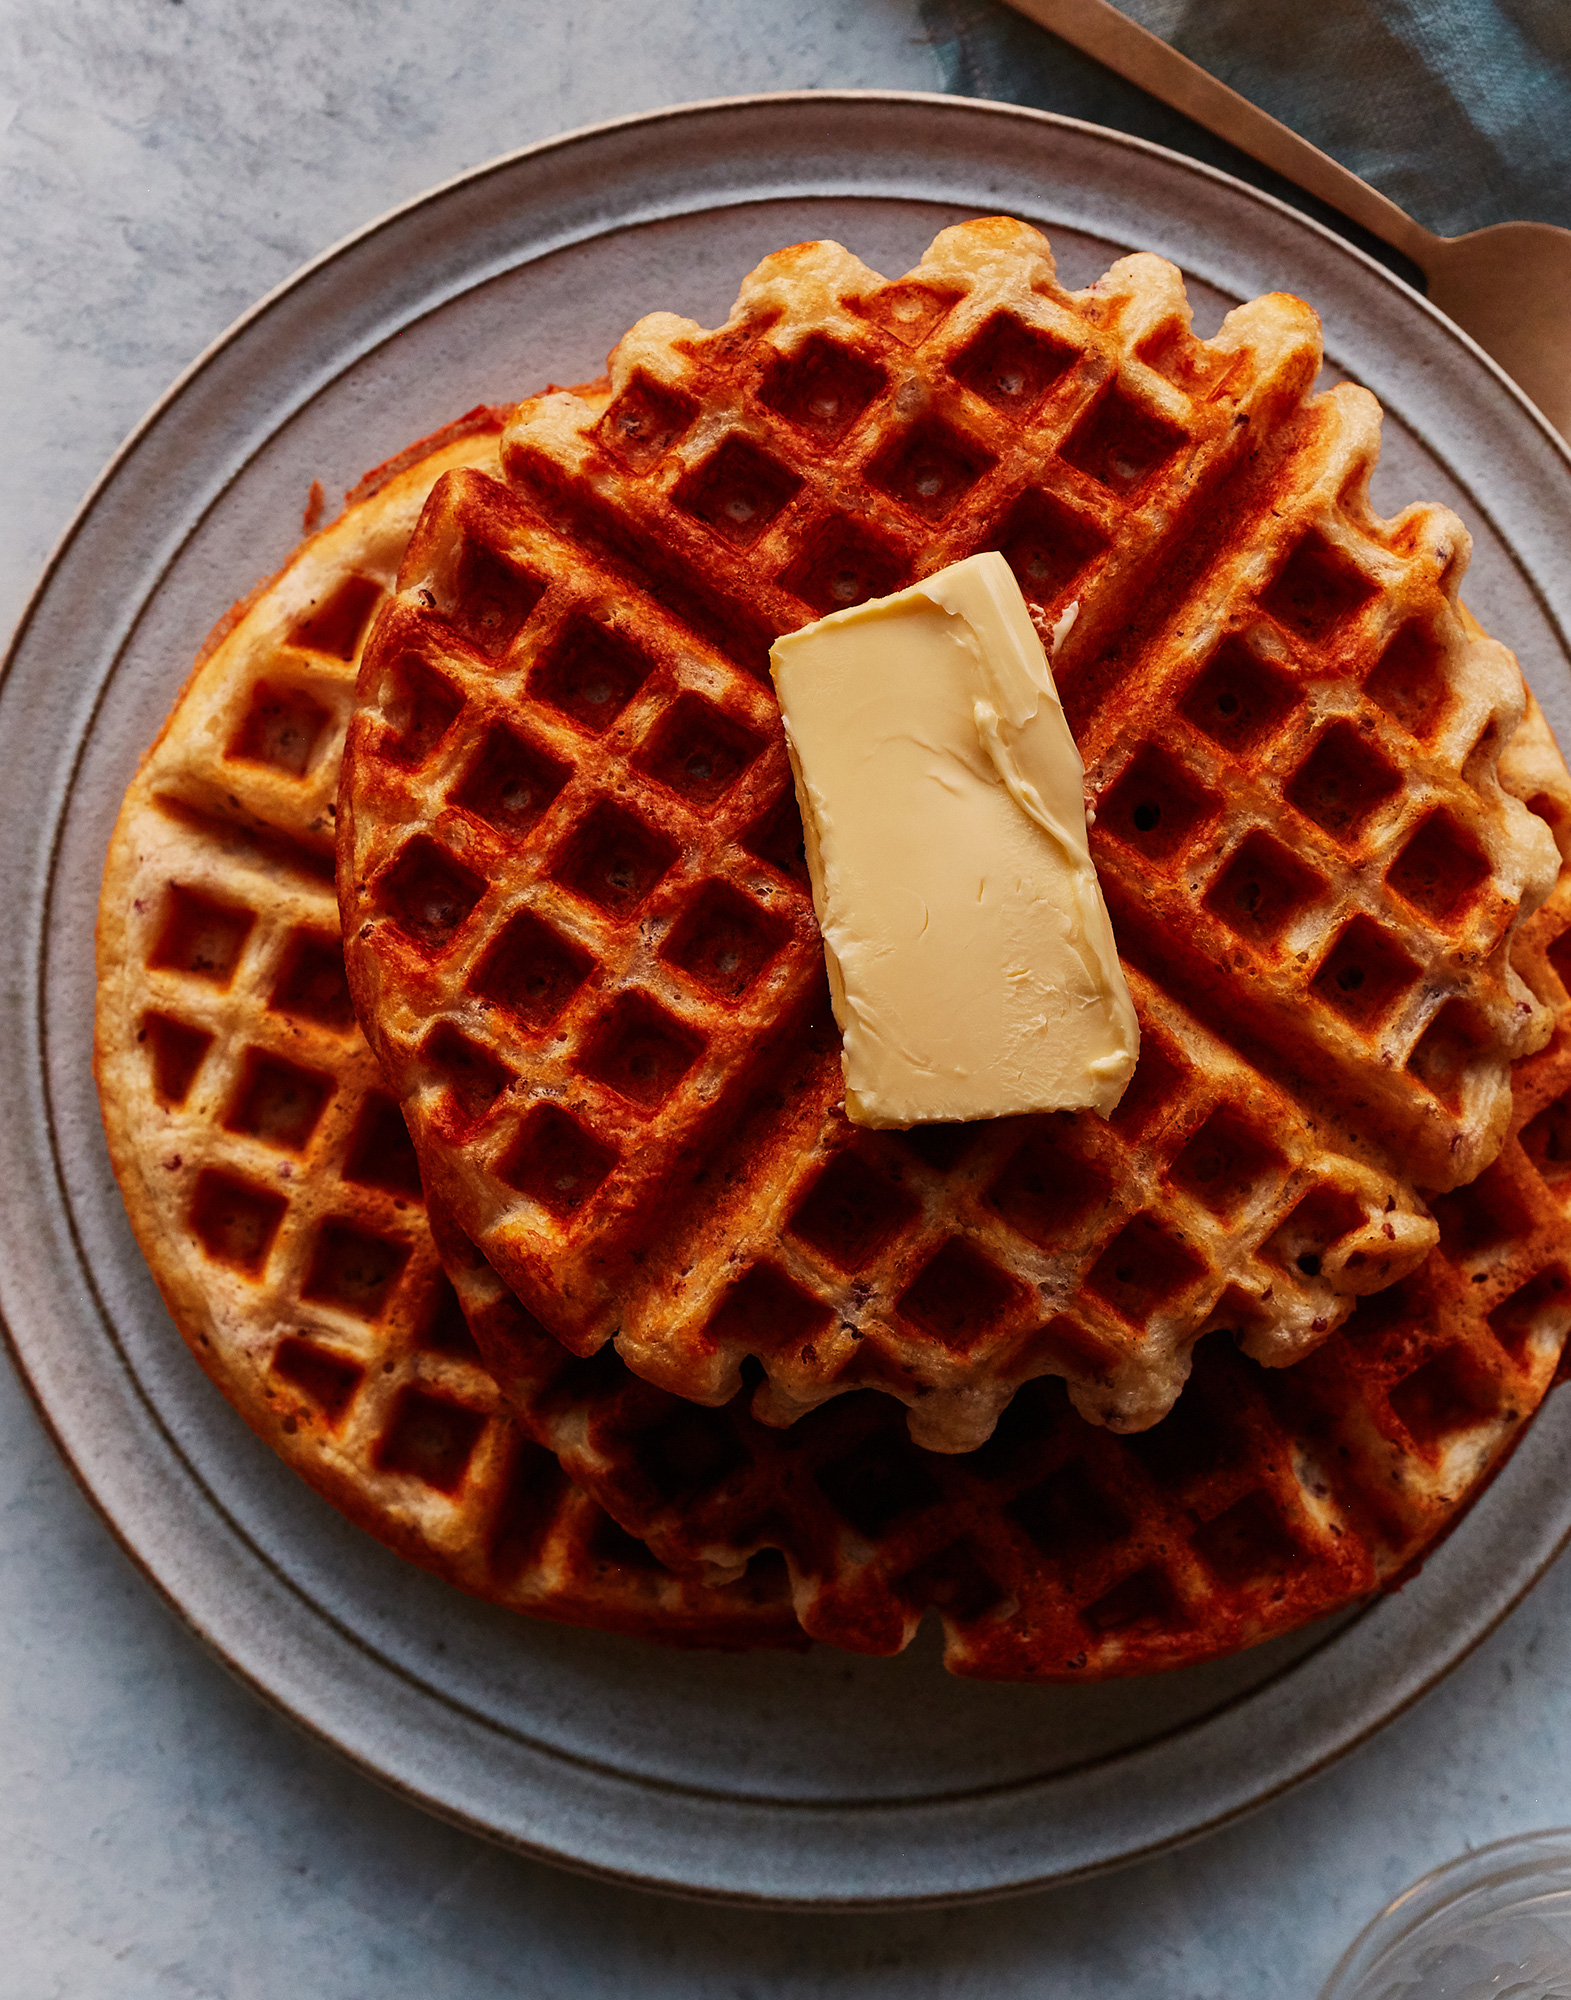 19_Waffles_with_Crispy_Quinoa_and_Honey_J_Miller_0399